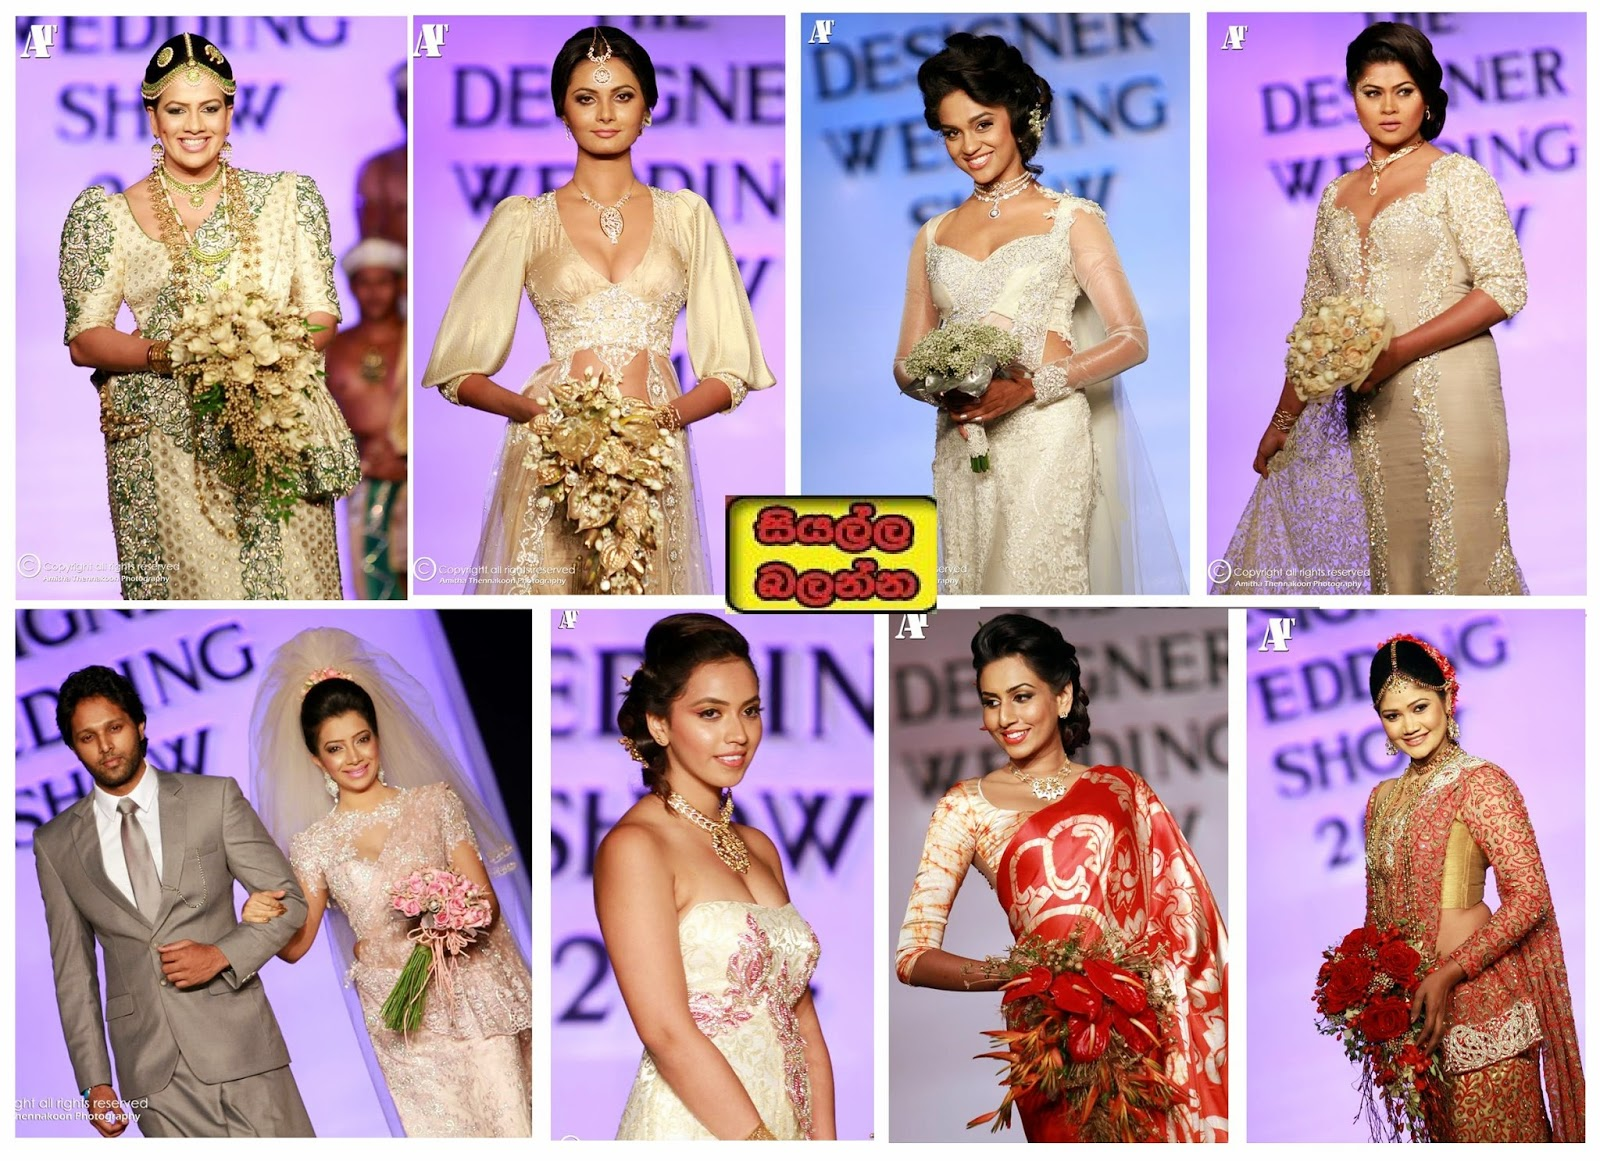 http://picture.gossiplankahotnews.com/2014/11/the-desiner-wedding-show-2014.html